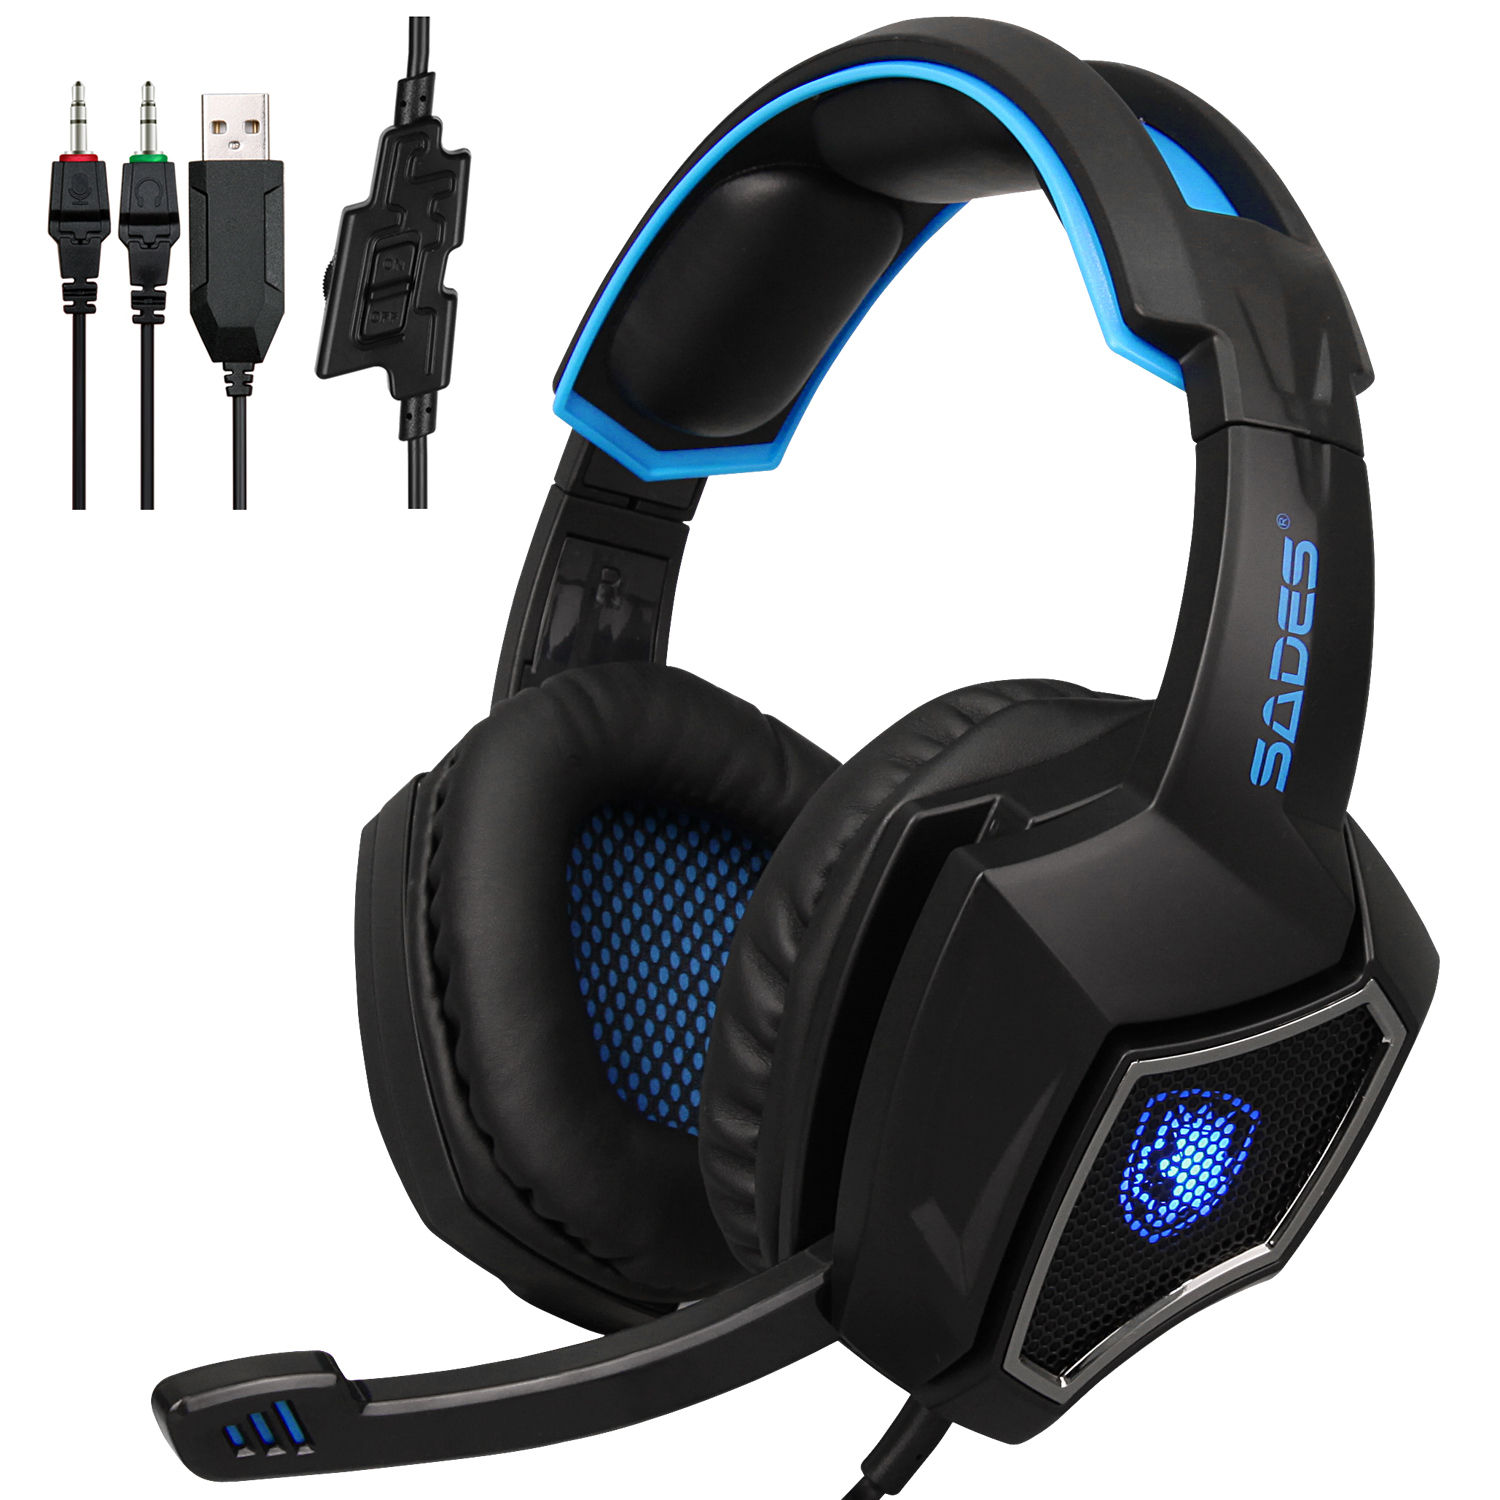 sades spirit wolf gaming headset wired stereo deep bass headphone with mic ebay. Black Bedroom Furniture Sets. Home Design Ideas